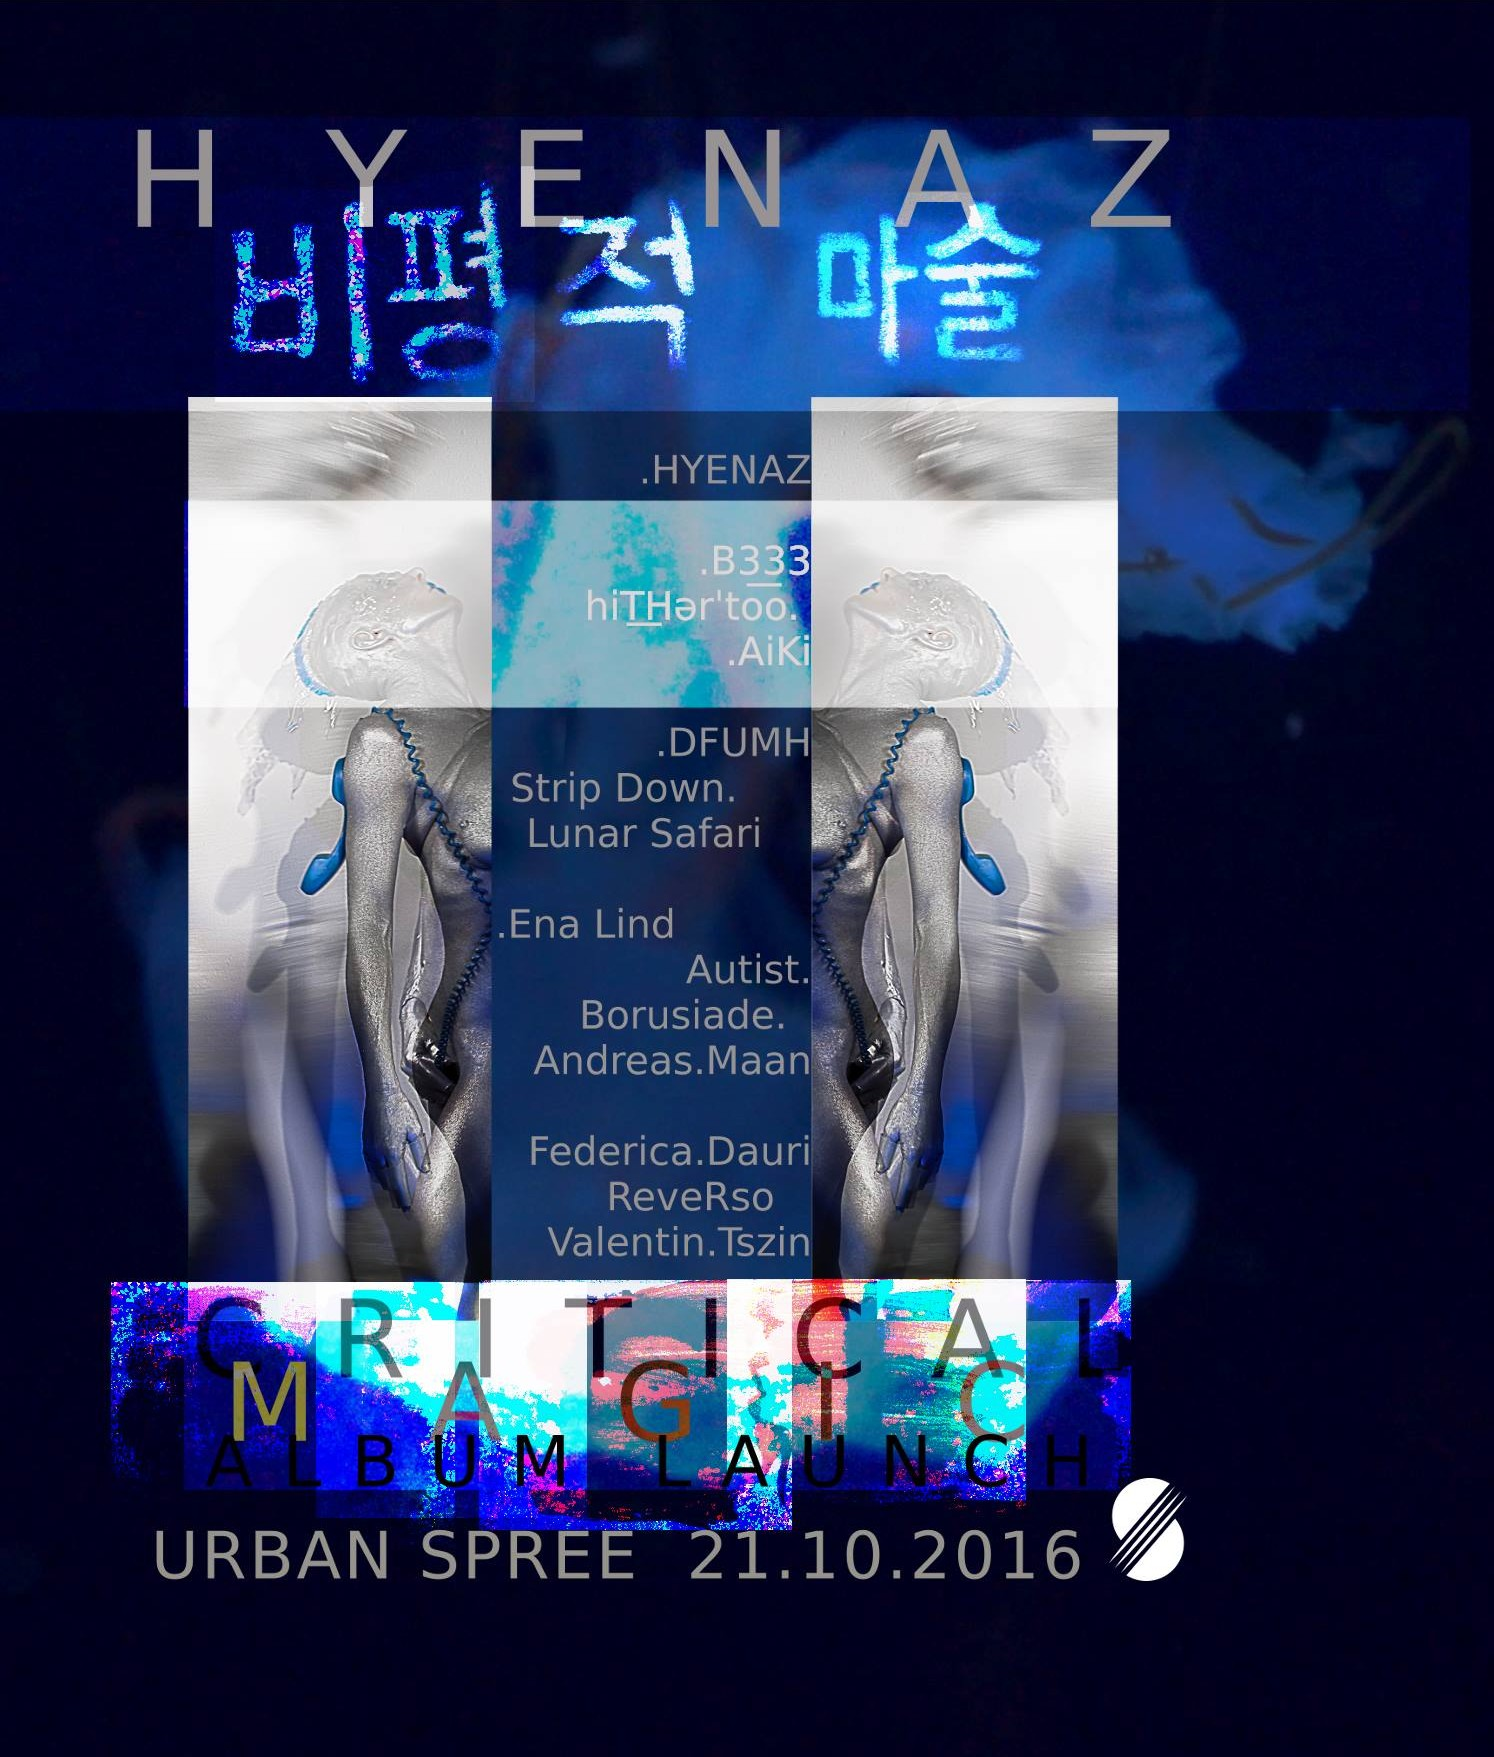 hyenaz-critical-magic-premiere-with-b333-at-urban-spree-berlin-2016-10-21